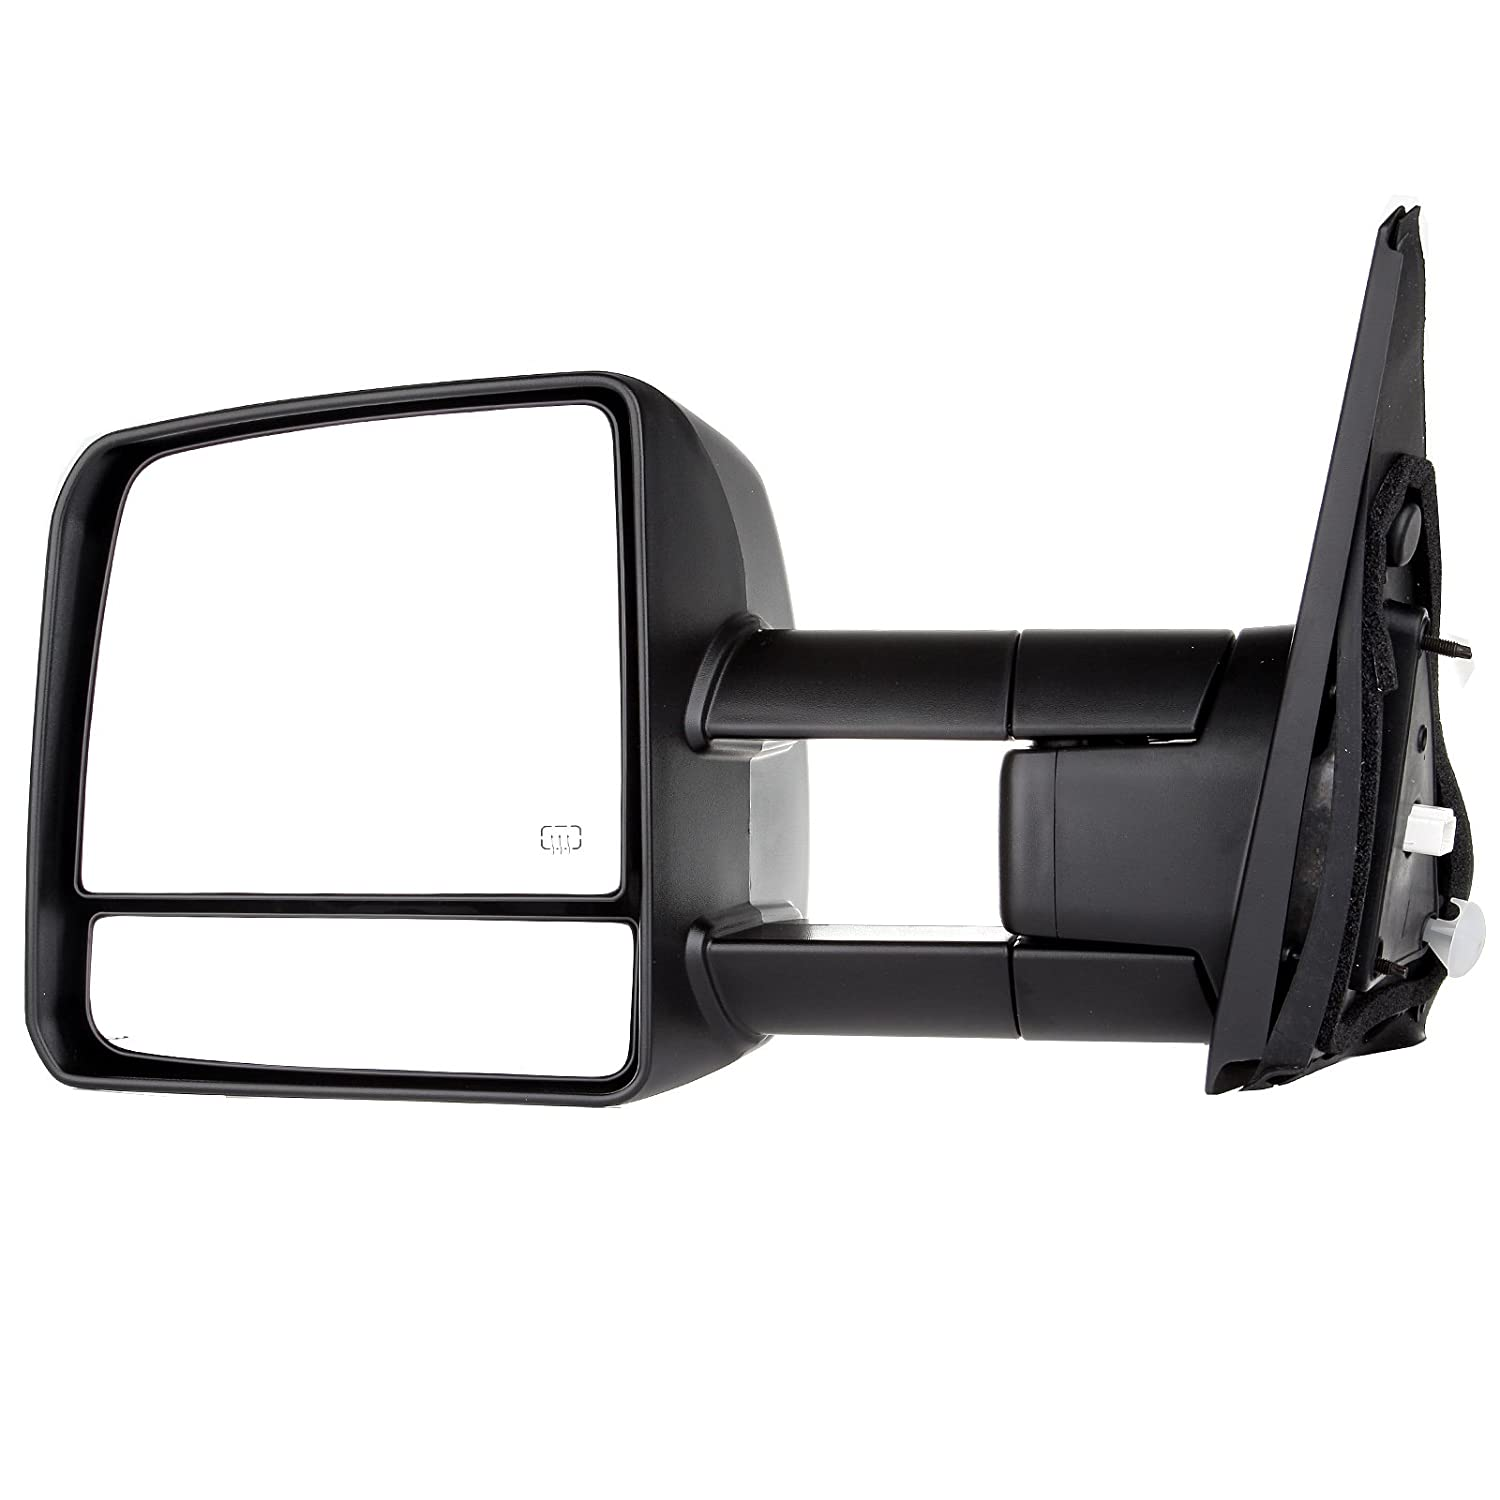 Heated Turn Signal Manual Extending Folding black SCITOO fit Toyota Towing Mirrors Rear View Mirrors fit 2007-2016 Toyota Tundra Truck Larger Glass Power Control